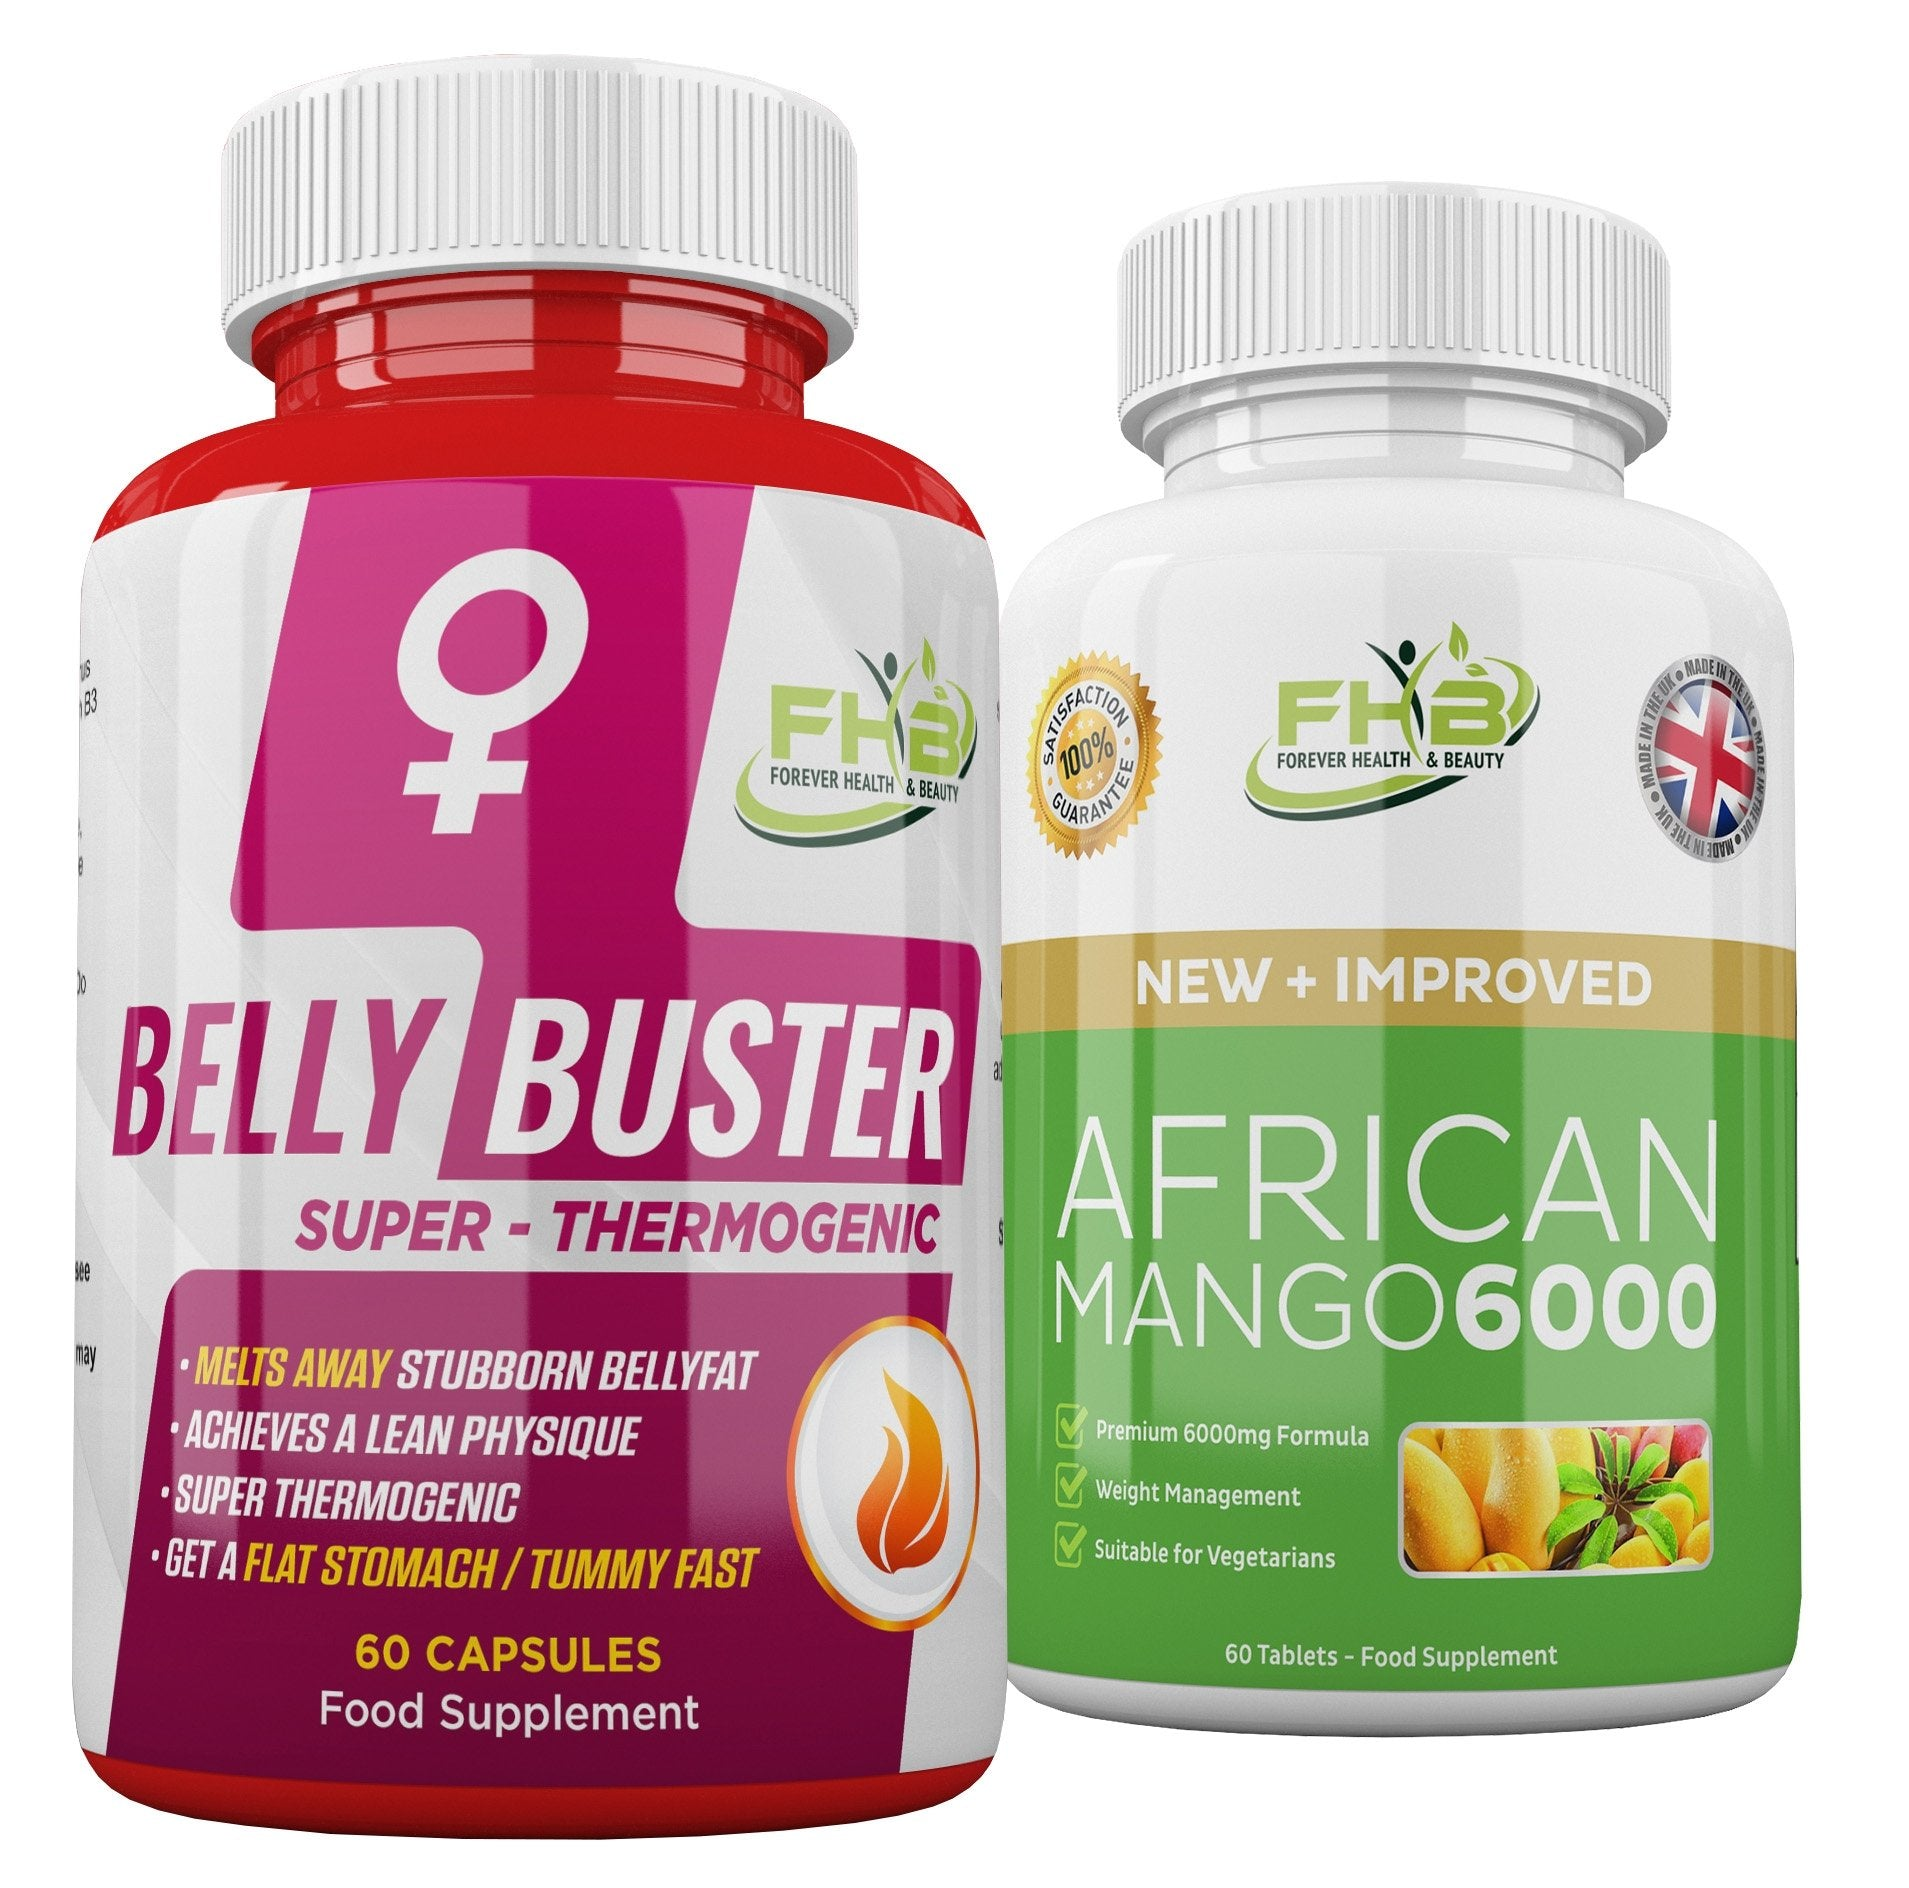 Belly Buster For Women & African Mango 6000 Combo - 120 Capsules